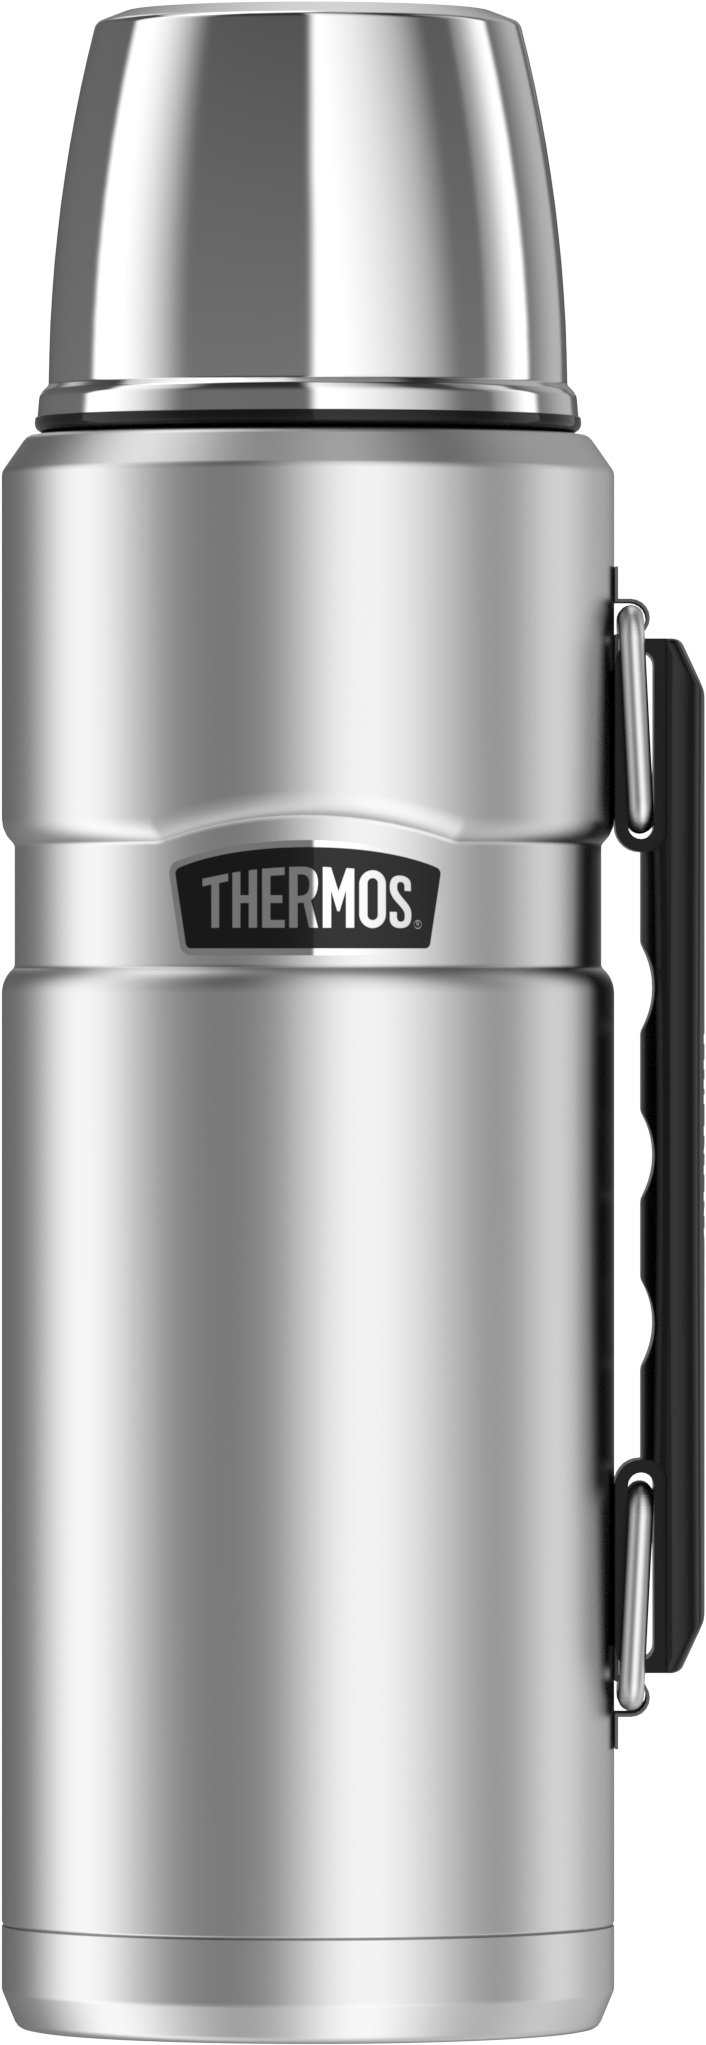 Thermos Stainless King 40 Ounce Beverage Bottle, Stainless Steel by Thermos (Image #1)